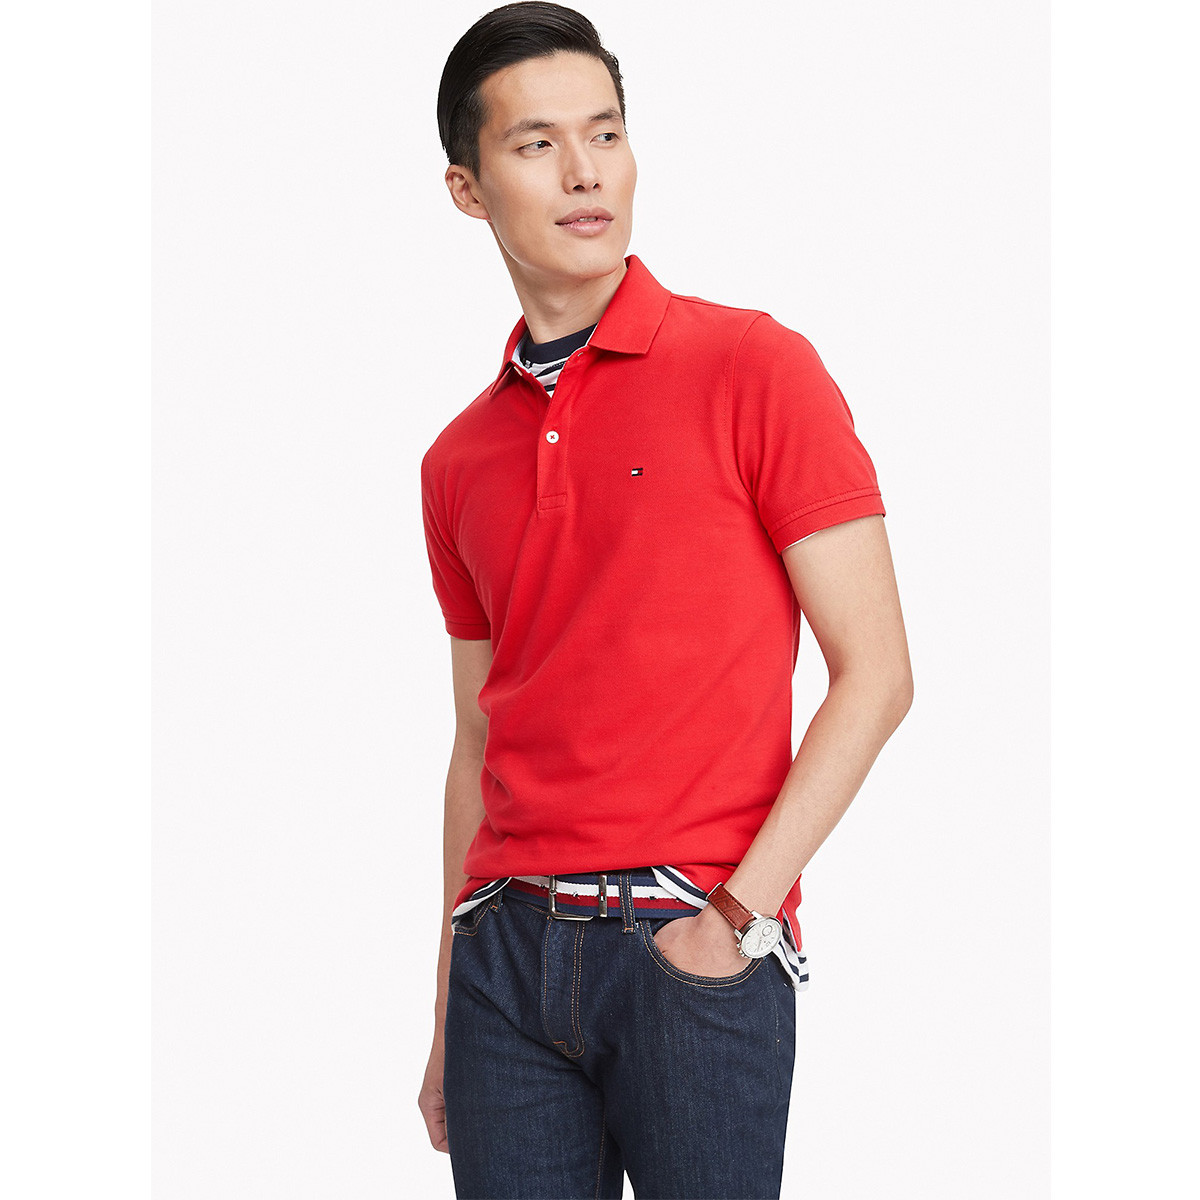 ao-polo-tommy-hilfiger-slim-fit-53